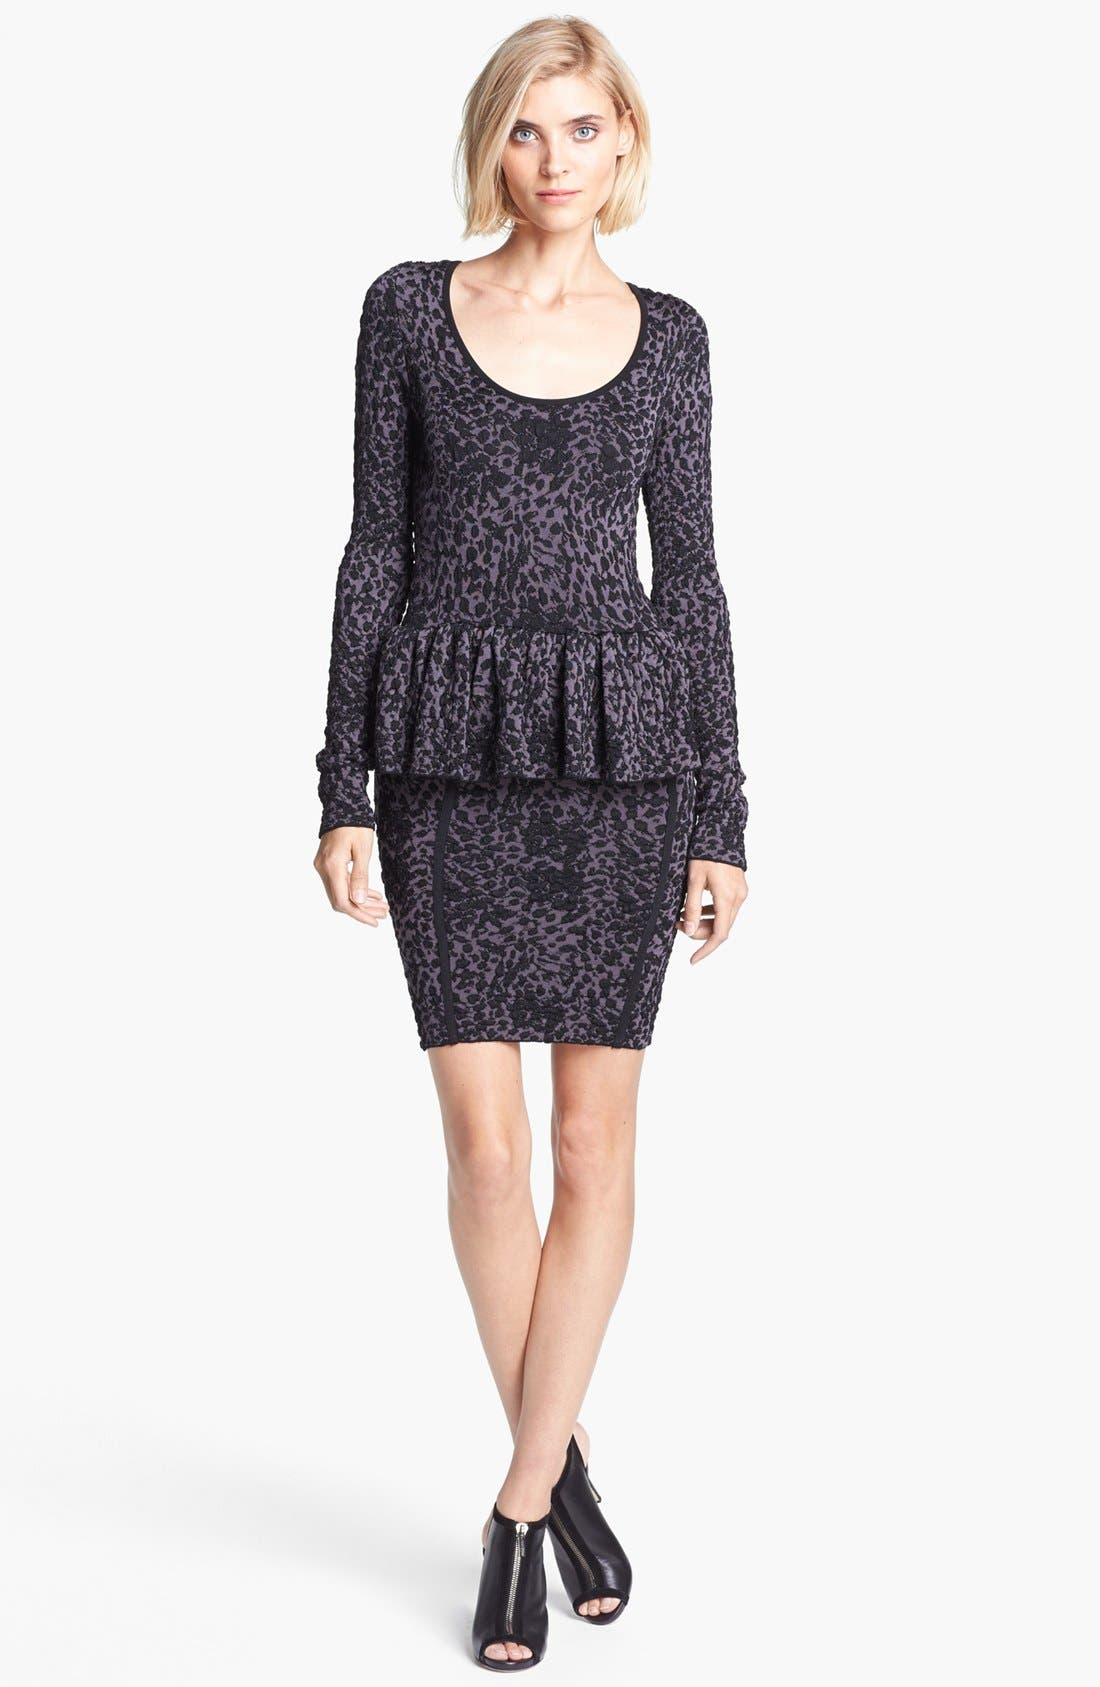 Main Image - Jay Godfrey Leopard Jacquard Knit Peplum Dress